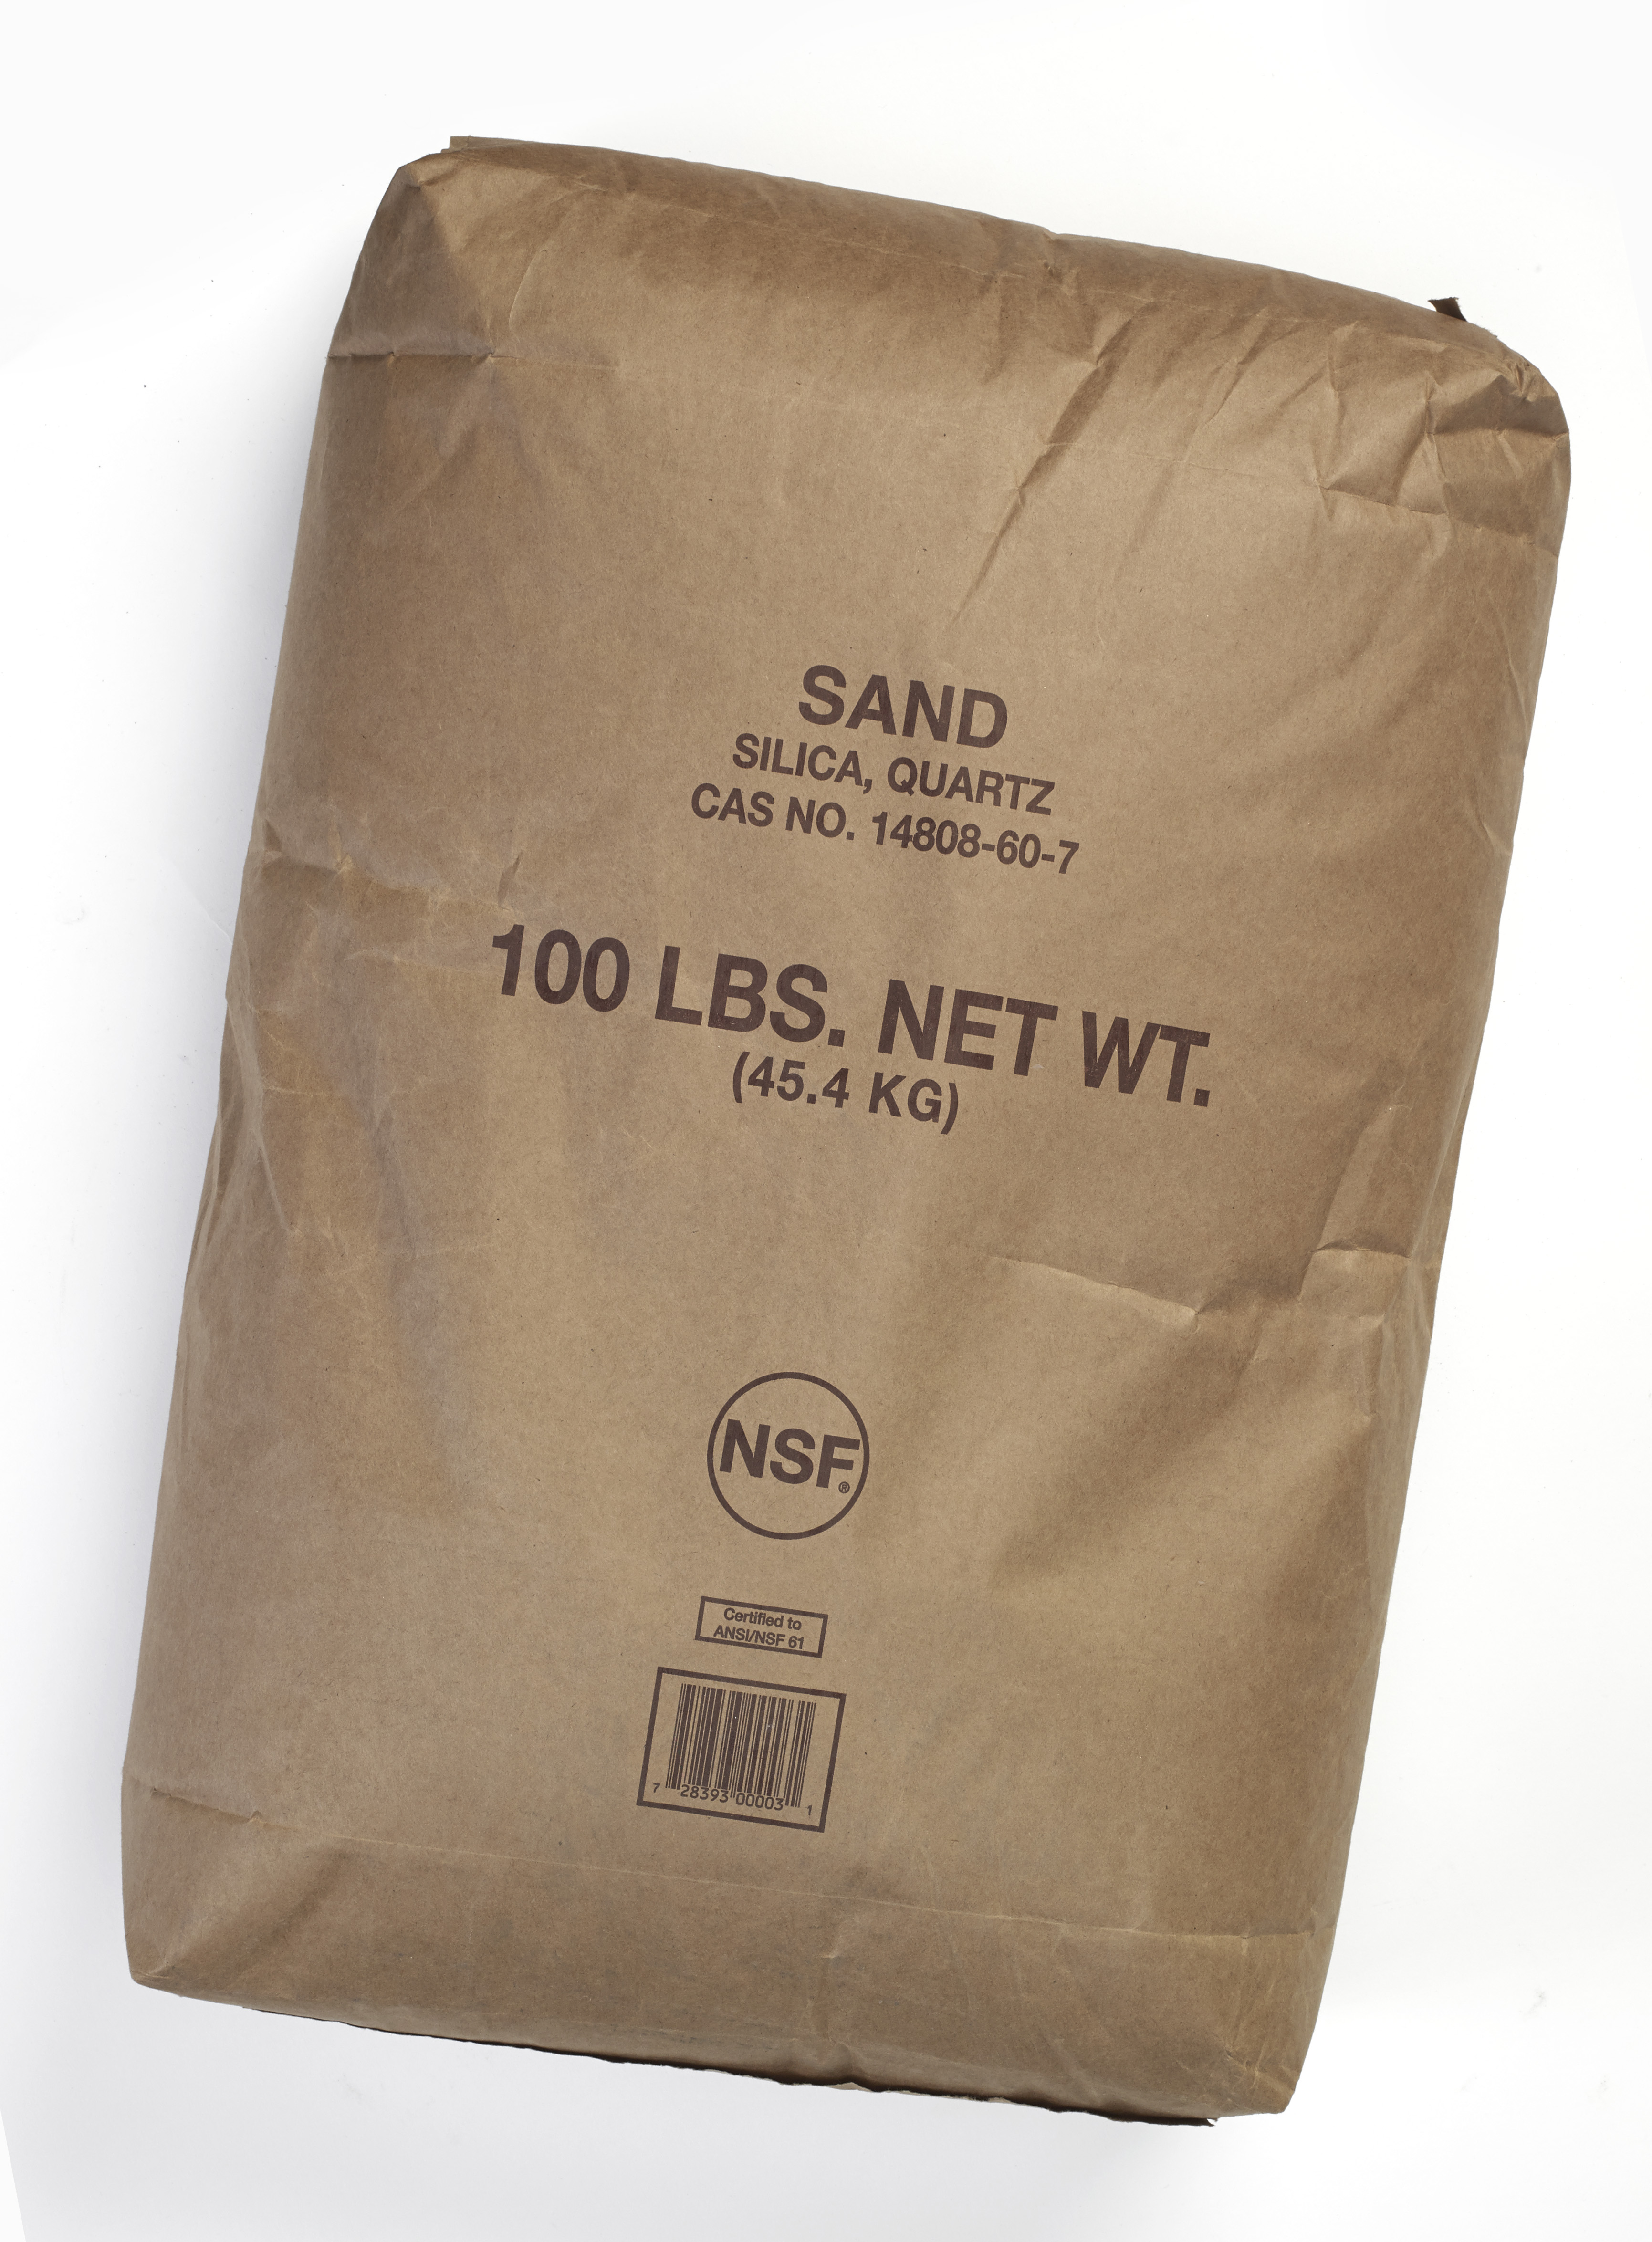 900291-0-0, 1 Blast Sand, Mutual Industries